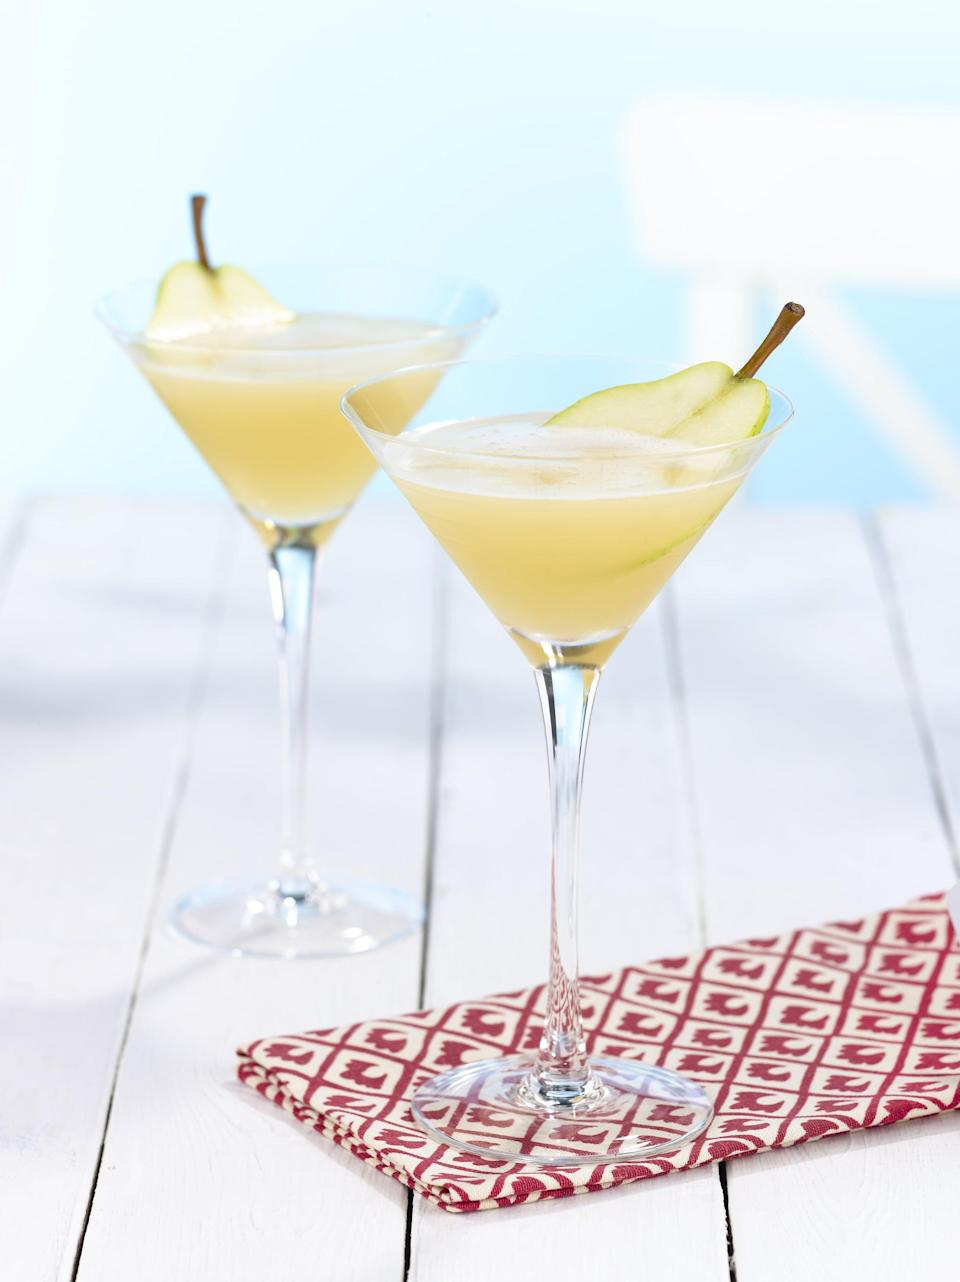 """<p>Those in North Dakota know a good drink when they see one, and a stiff kamikaze never disappoints. This pear-infused recipe features citrus flavors that make it seriously good.</p> <p><strong>Get the recipe</strong>: <a href=""""https://www.popsugar.com/buy?url=https%3A%2F%2Fwww.absolutdrinks.com%2Fen%2Fdrinks%2Fabsolut-pear-kamekaazi%2F&p_name=pear%20kamikaze&retailer=absolutdrinks.com&evar1=yum%3Aus&evar9=47471653&evar98=https%3A%2F%2Fwww.popsugar.com%2Ffood%2Fphoto-gallery%2F47471653%2Fimage%2F47475451%2FNorth-Dakota-Kamikaze&list1=cocktails%2Cdrinks%2Calcohol%2Crecipes&prop13=api&pdata=1"""" class=""""link rapid-noclick-resp"""" rel=""""nofollow noopener"""" target=""""_blank"""" data-ylk=""""slk:pear kamikaze"""">pear kamikaze</a></p>"""